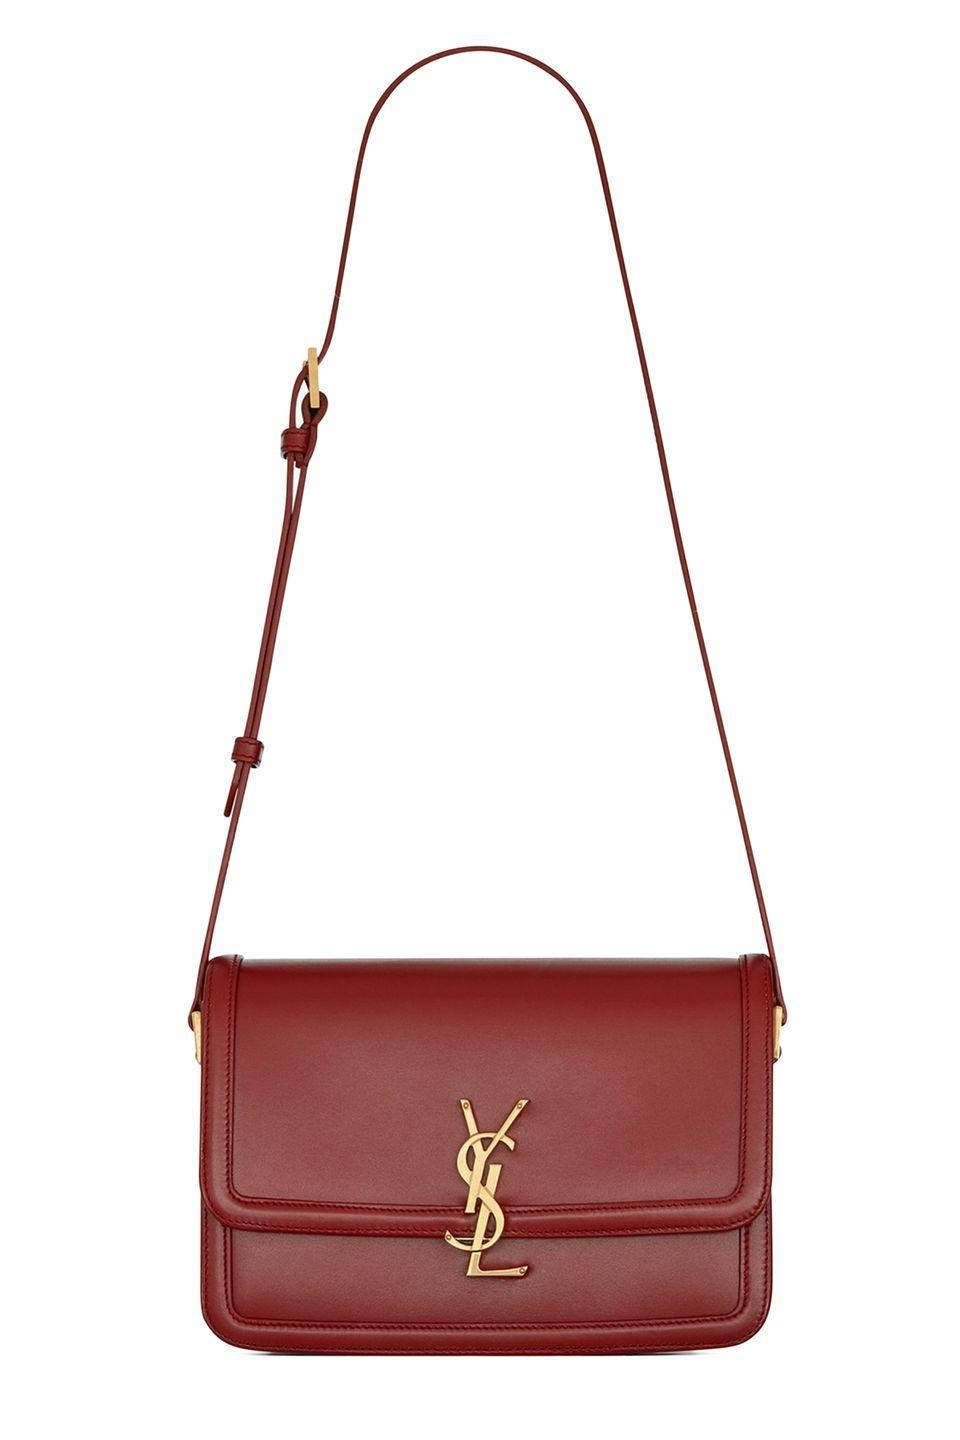 "<p>If you're looking for your next *forever* crossbody, i.e. the bag you'll wear for the rest of your life, look to Saint Laurent's newest style. The Solferino combines heritage with modernity for a look that's both 'stolen from your mother's closet' <em>and</em> fresh off the runway.</p><p><em>Saint Laurent $2,800, ysl.com</em></p><p><a class=""link rapid-noclick-resp"" href=""https://go.redirectingat.com?id=74968X1596630&url=https%3A%2F%2Fwww.ysl.com%2Fus%2Fshop-product%2Fwomen%2Fhandbags-monogramme-satchel-solferino-medium-satchel-in-box-saint-laurent-leather_cod45520614cp.html%23dept%3Dwomen_bags_lines_solferino&sref=https%3A%2F%2Fwww.elle.com%2Ffashion%2Fshopping%2Fg33416567%2Fdesigner-it-bags-pre-fall-2021%2F"" rel=""nofollow noopener"" target=""_blank"" data-ylk=""slk:SHOP NOW"">SHOP NOW</a></p>"